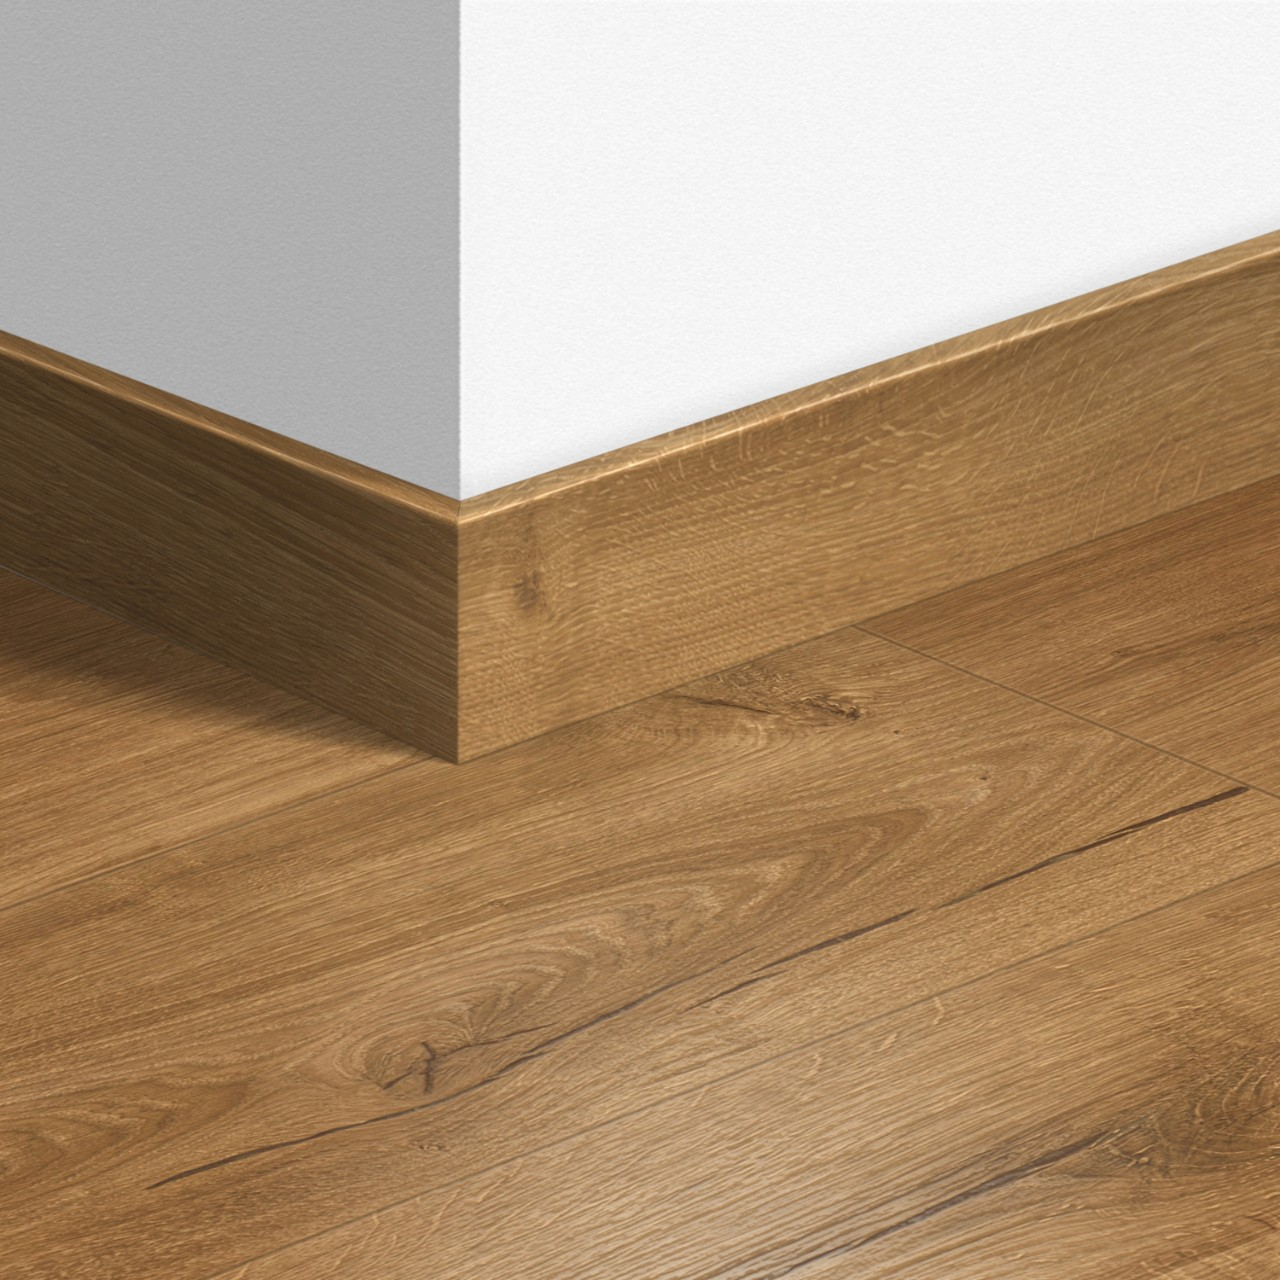 QSPSKR Laminate Accessories Classic oak natural QSPSKR01848